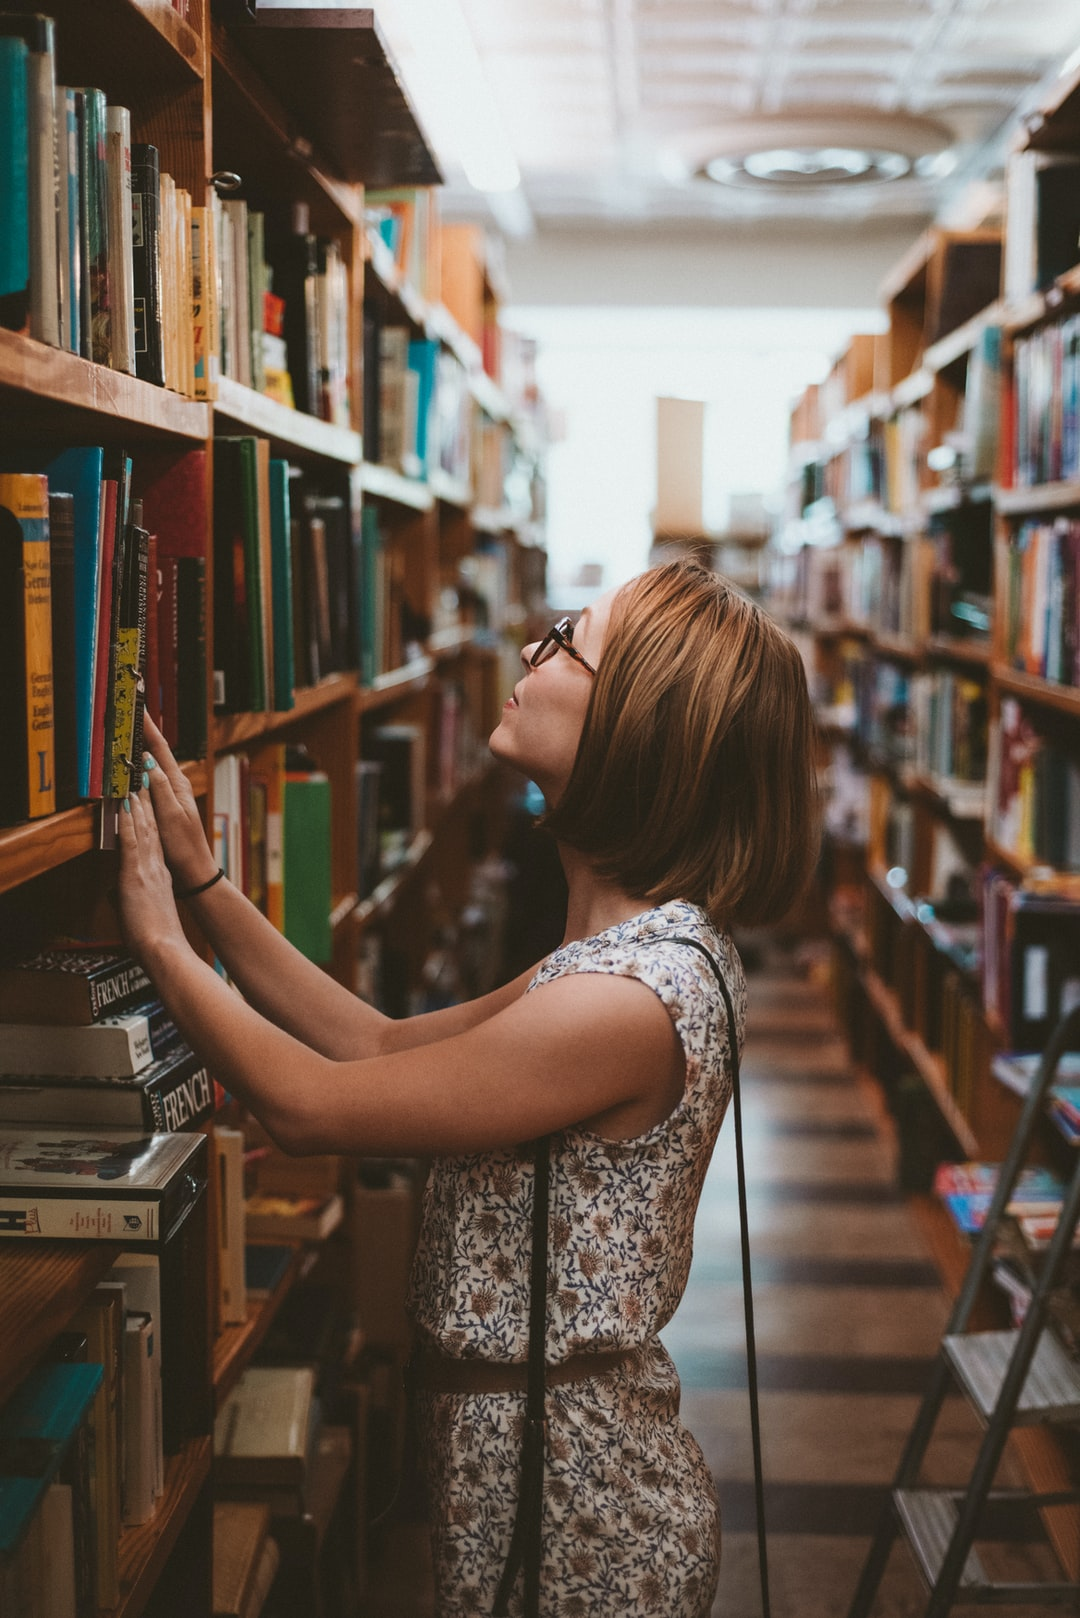 Woman with short hair and glasses looking for a book in the shelves of a library in Charlotte